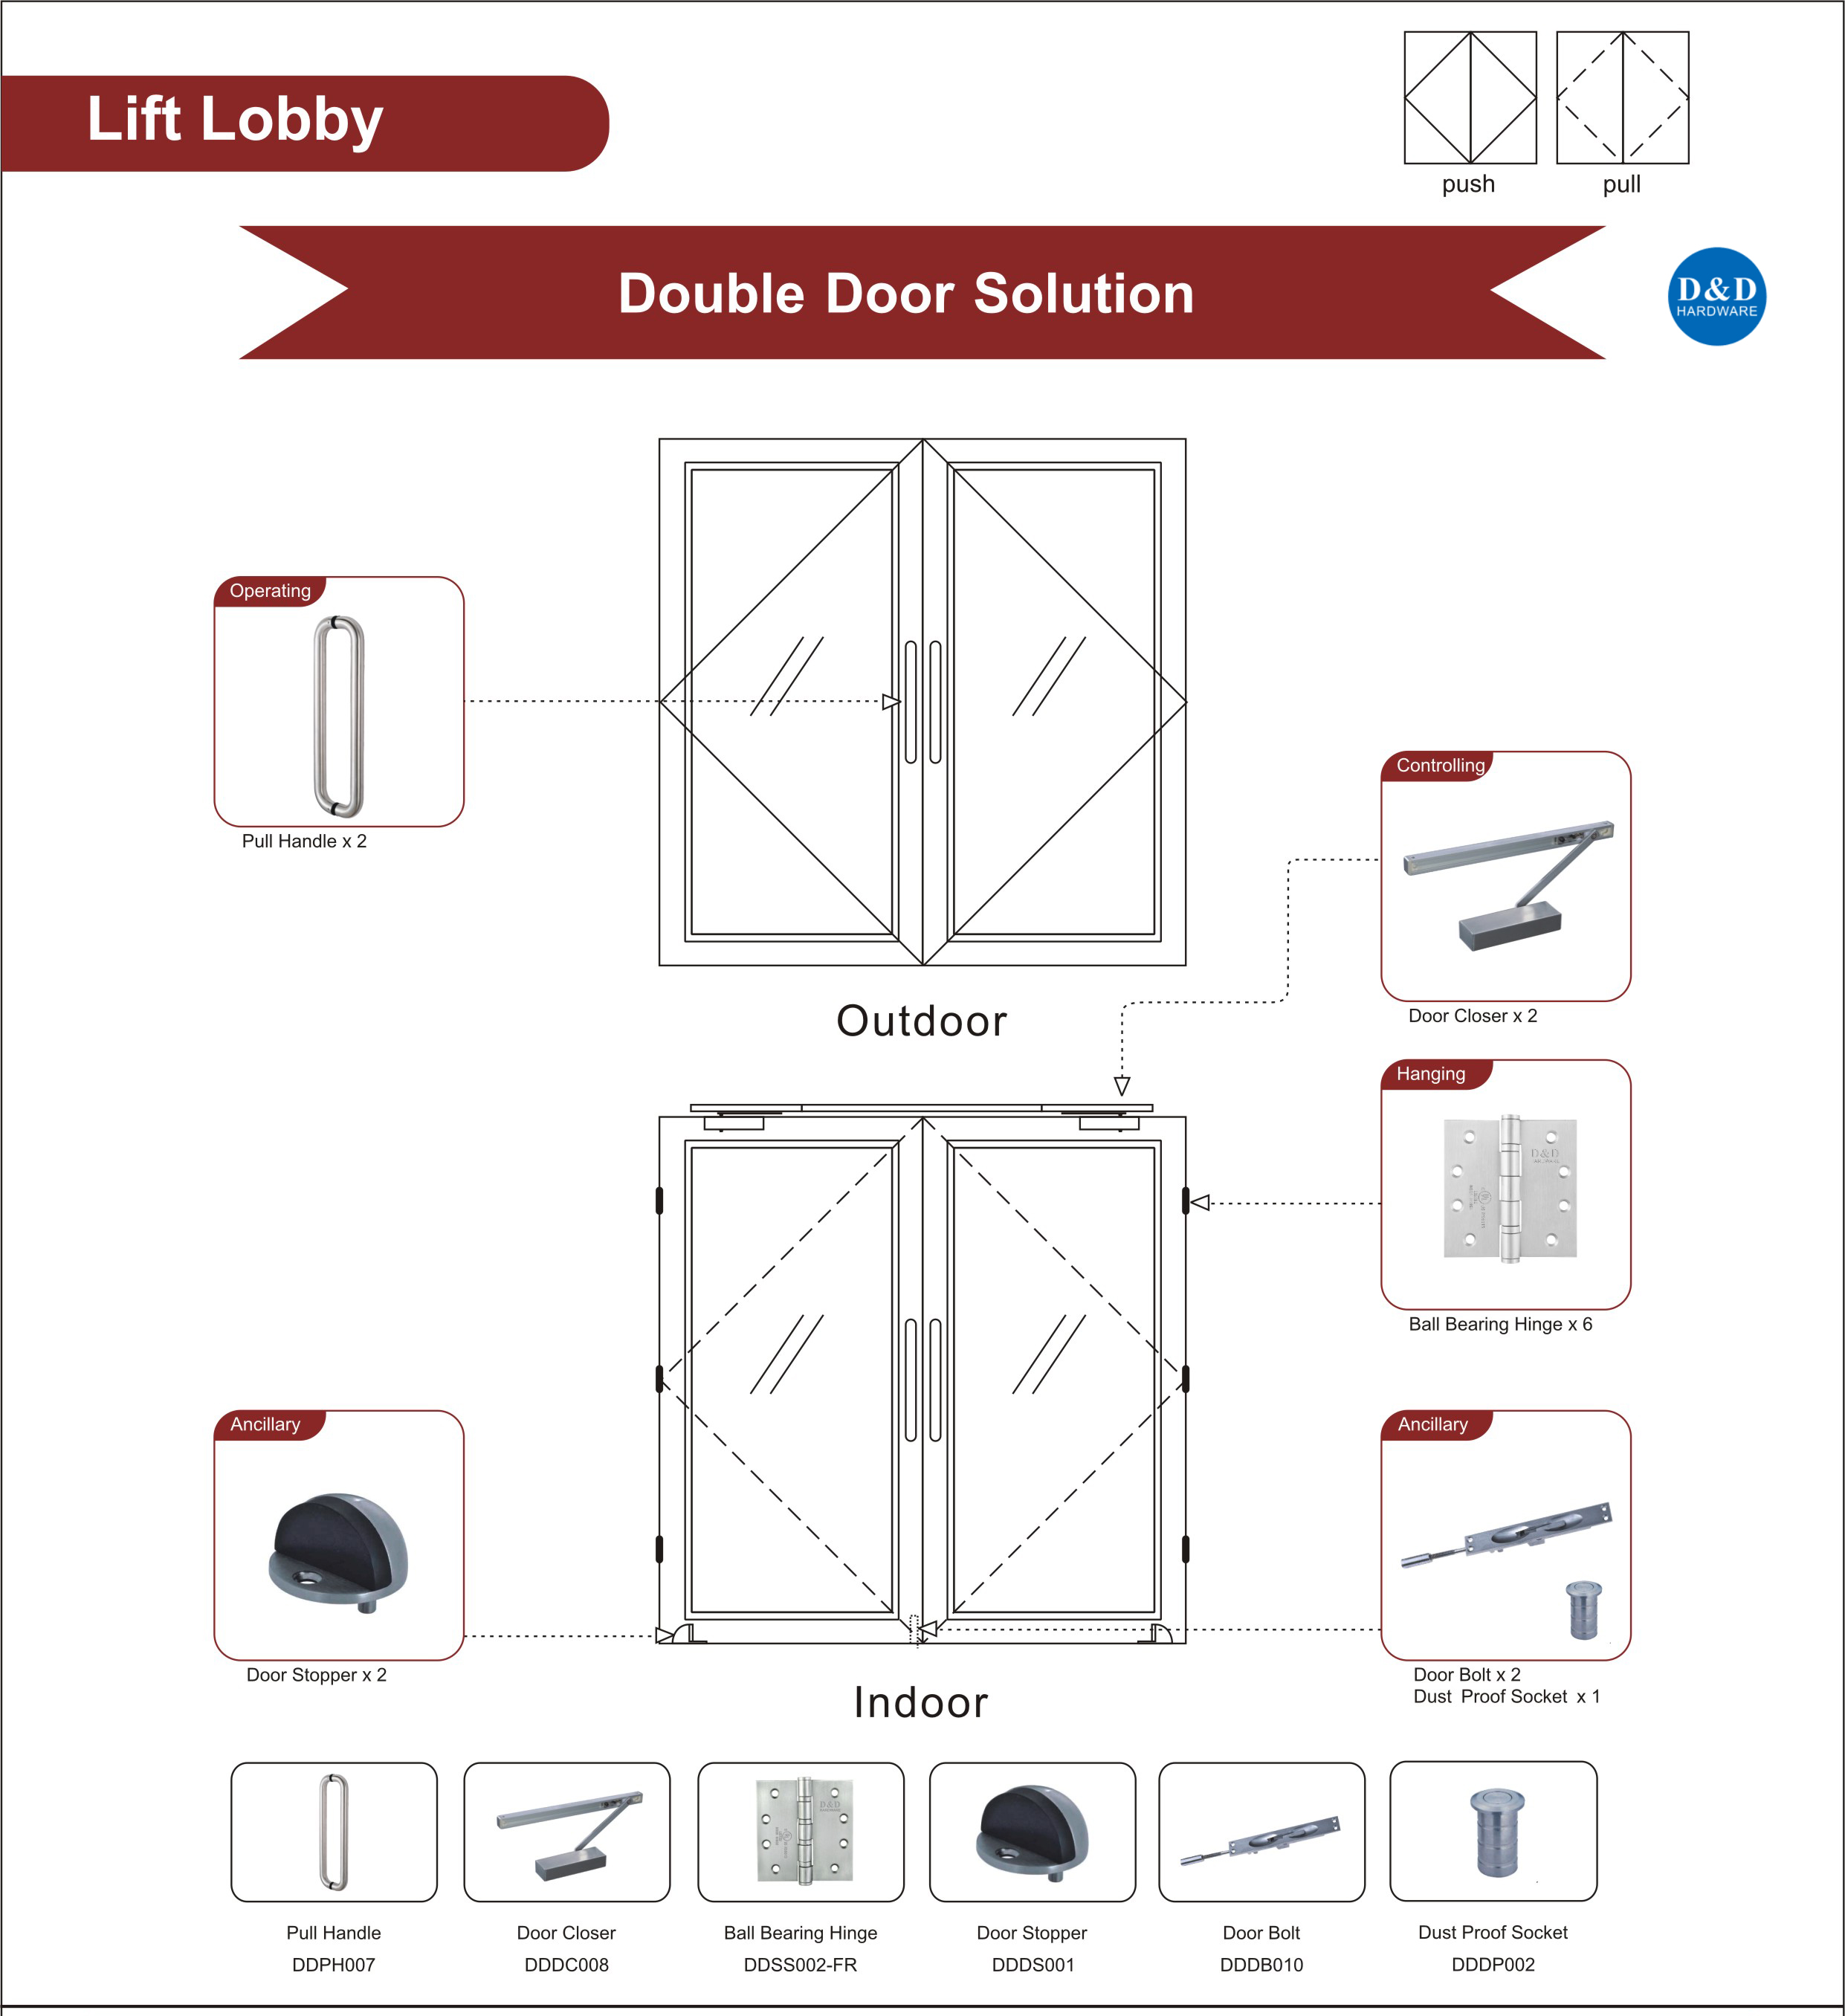 Fire rated glass door ironmongery for lift lobby double door dd dd hardware offers a wide range of security door hardware options for lift lobby that helps the building to solve several safety problems planetlyrics Gallery